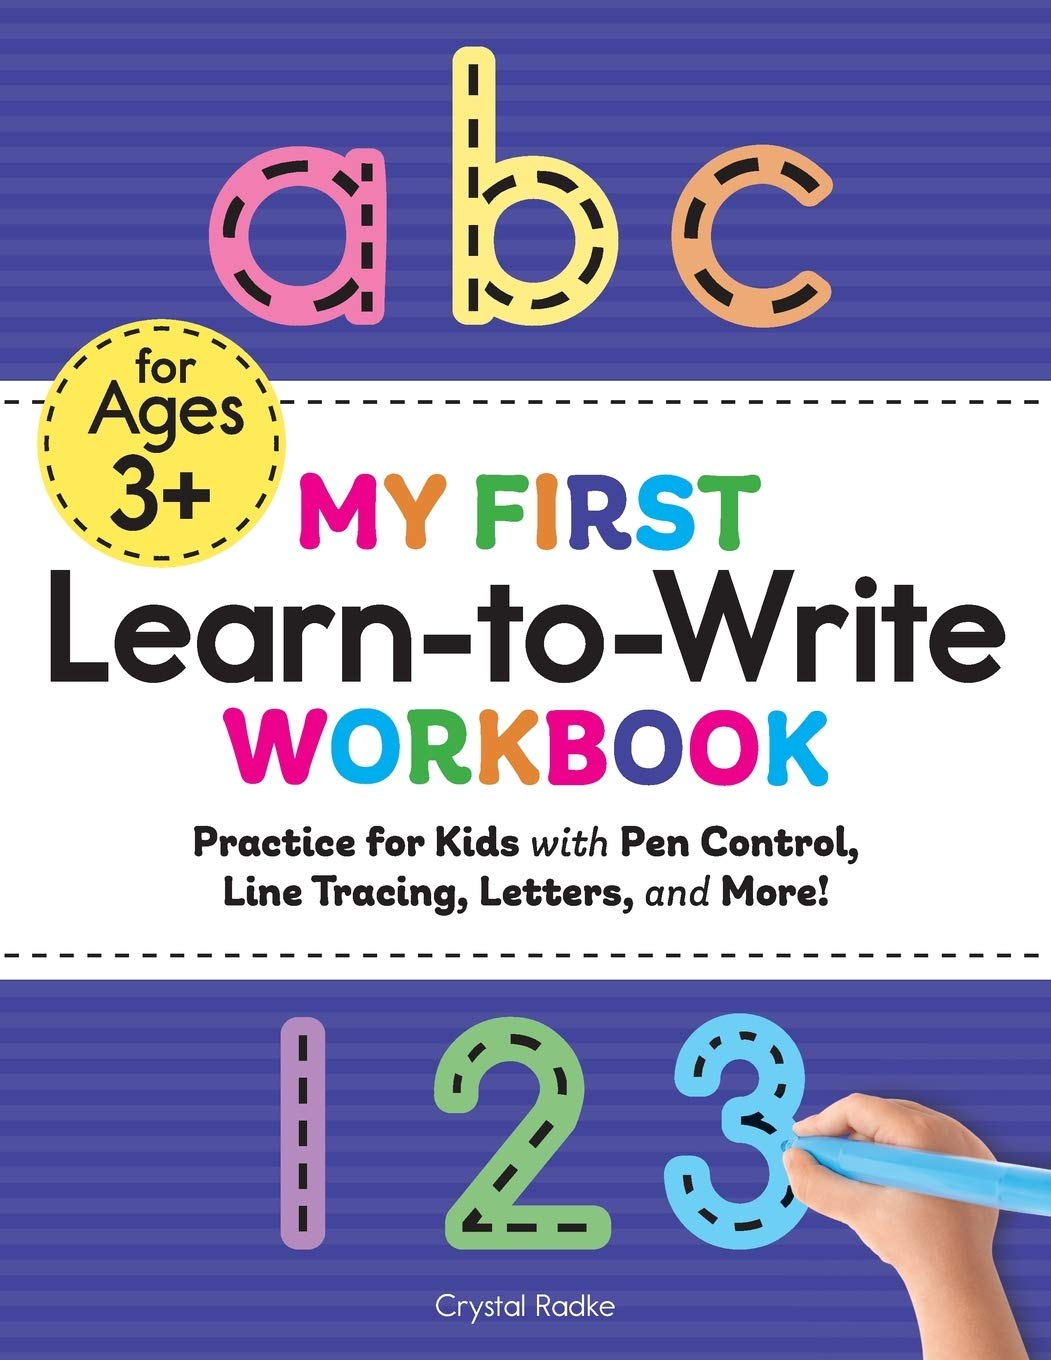 My First Learn to Write Workbook: Practice for Kids with Pen Control, Line Tracing, Letters, and More! (Kids coloring job books)